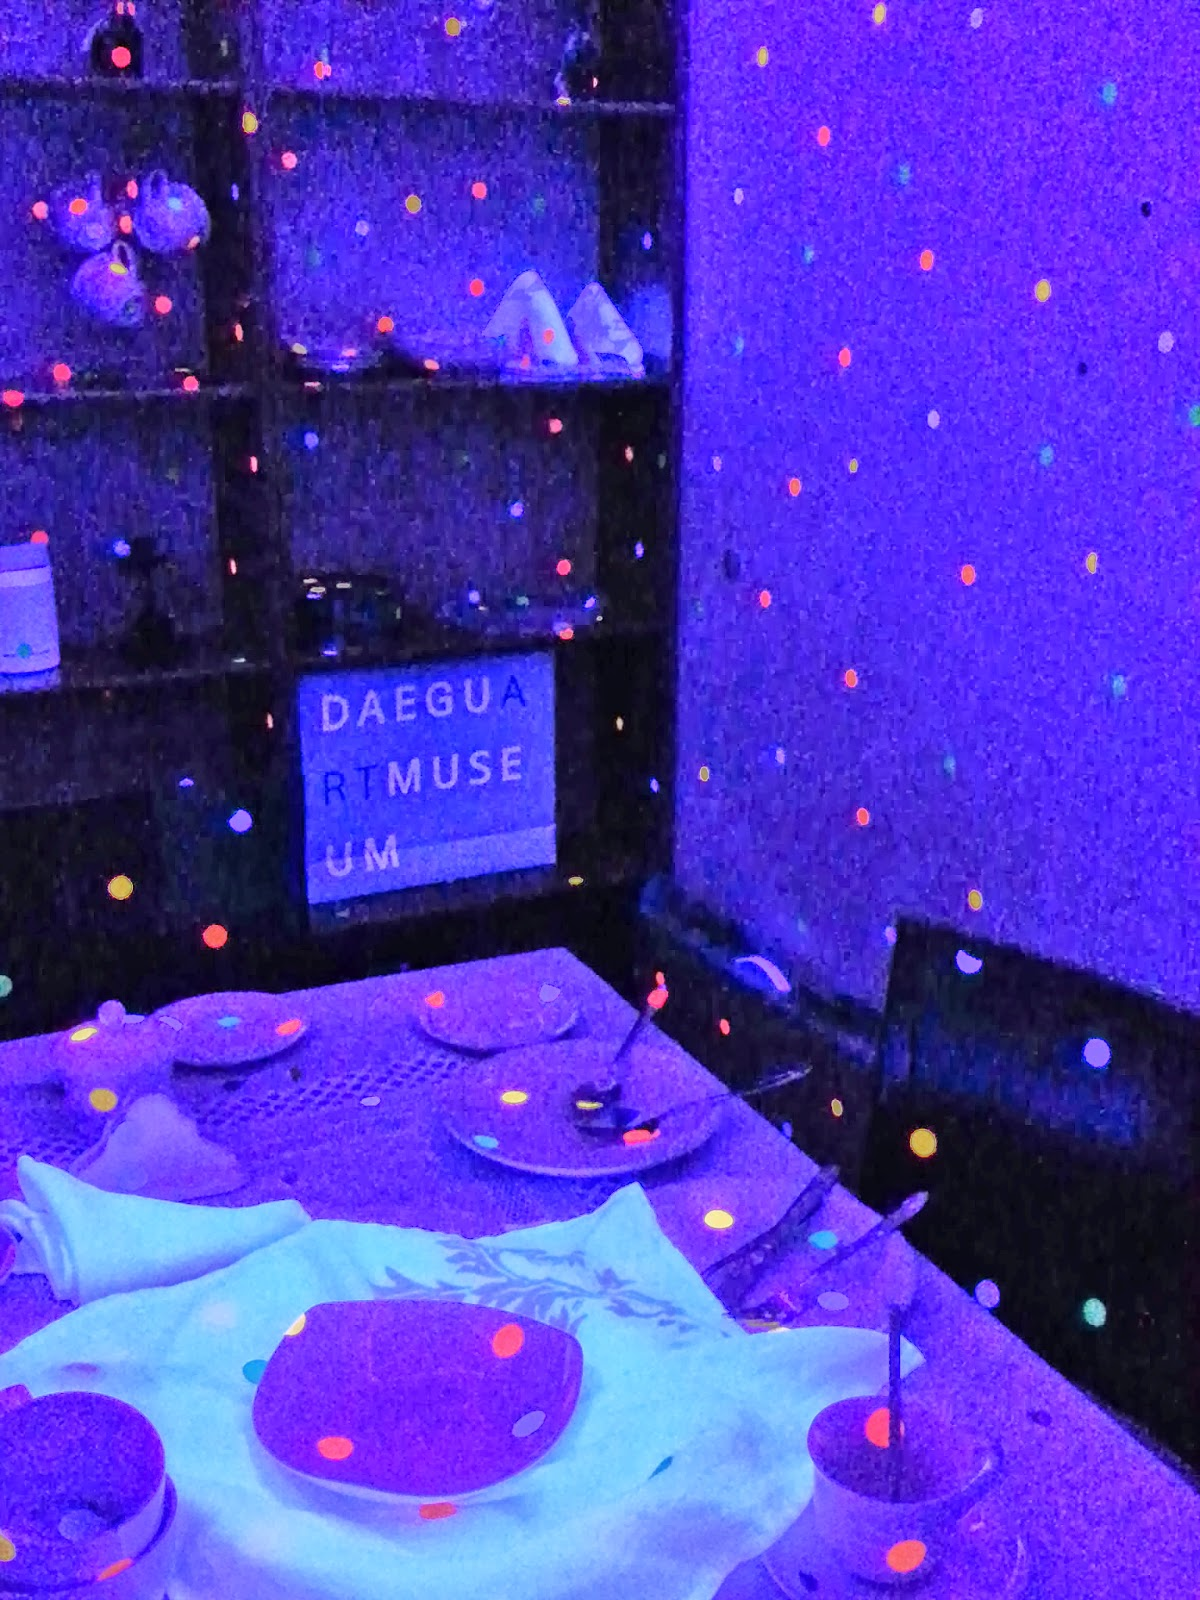 Black Light Bedroom World Allowing Visitors To